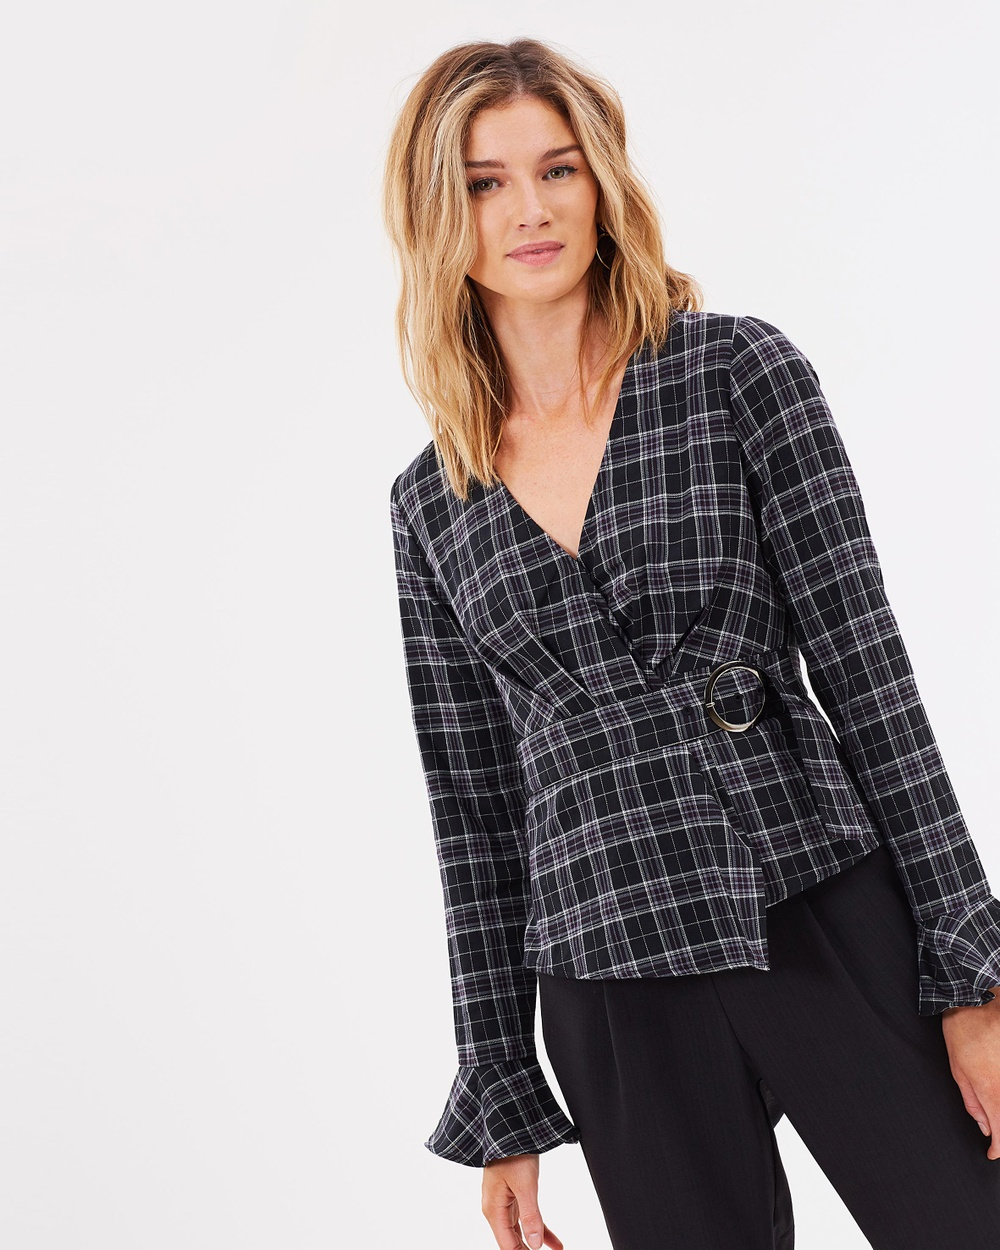 Atmos & Here ICONIC EXCLUSIVE Elsa Cotton Wrap Top Tops Dark Check ICONIC EXCLUSIVE Elsa Cotton Wrap Top